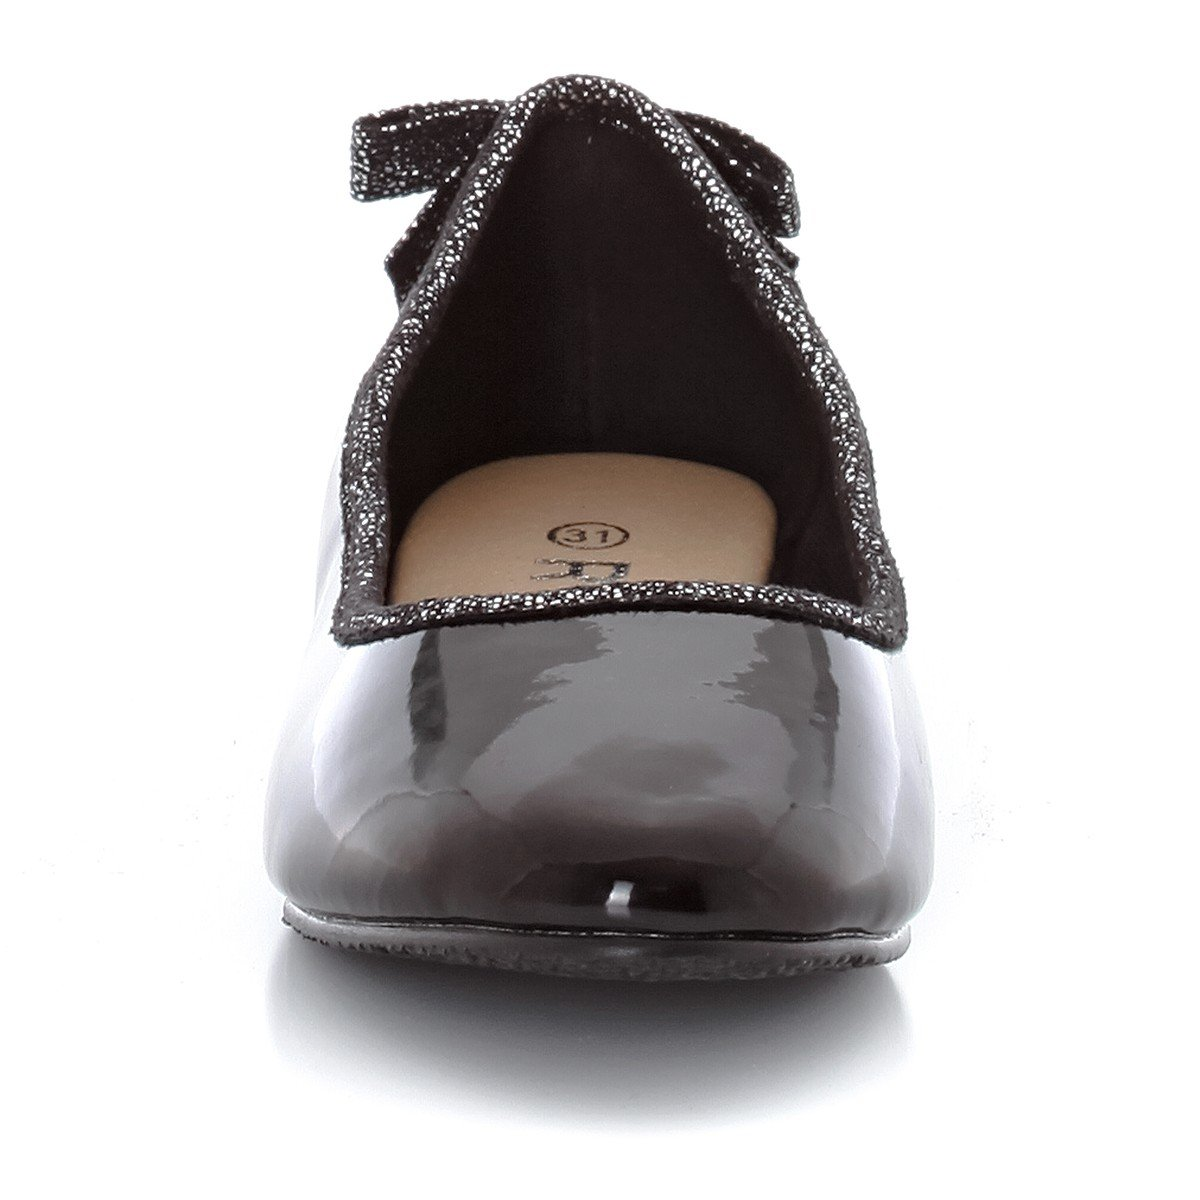 La Redoute Collections Big Girls Ballet Pumps with Bow Trim On Heel